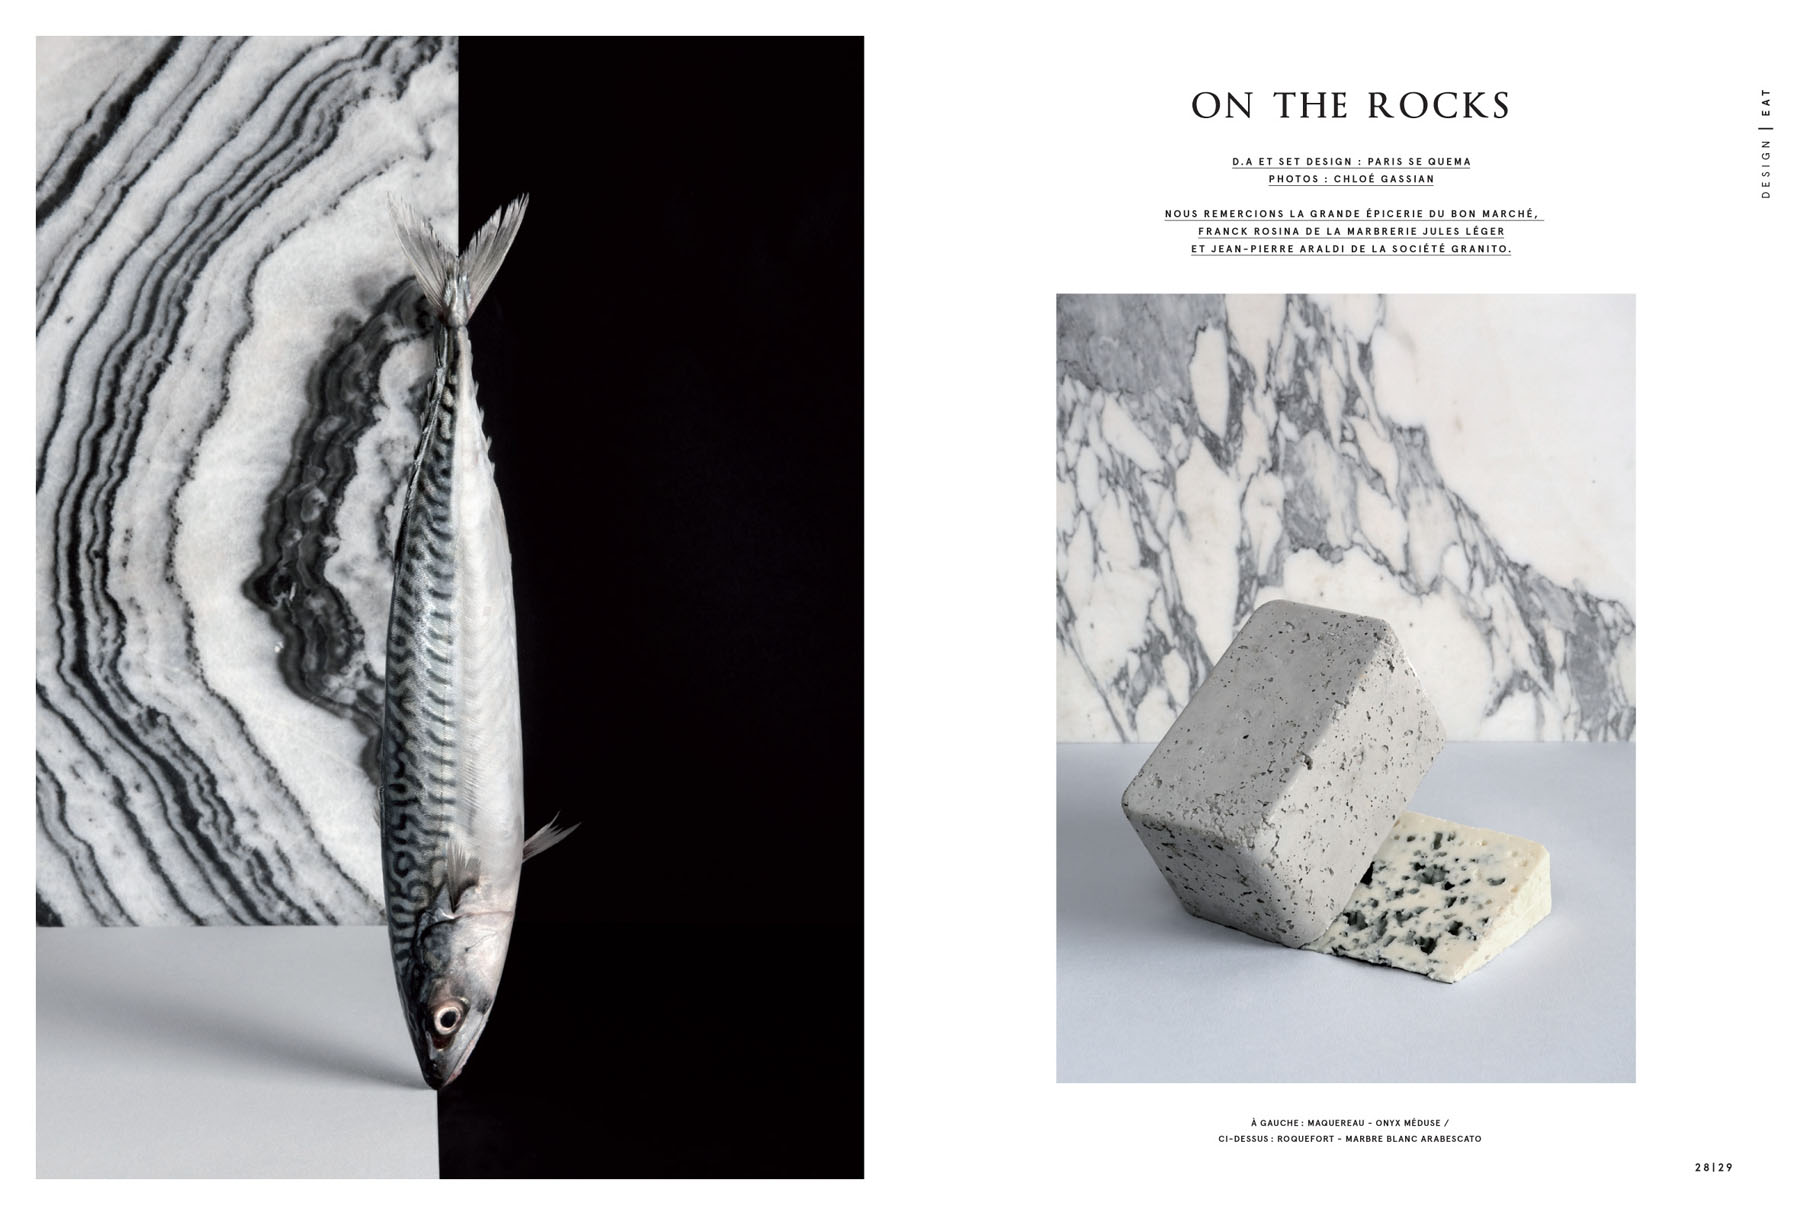 On The Rocks - Mint Magazine / Paris Se Quema & Chloé Gassian (13)